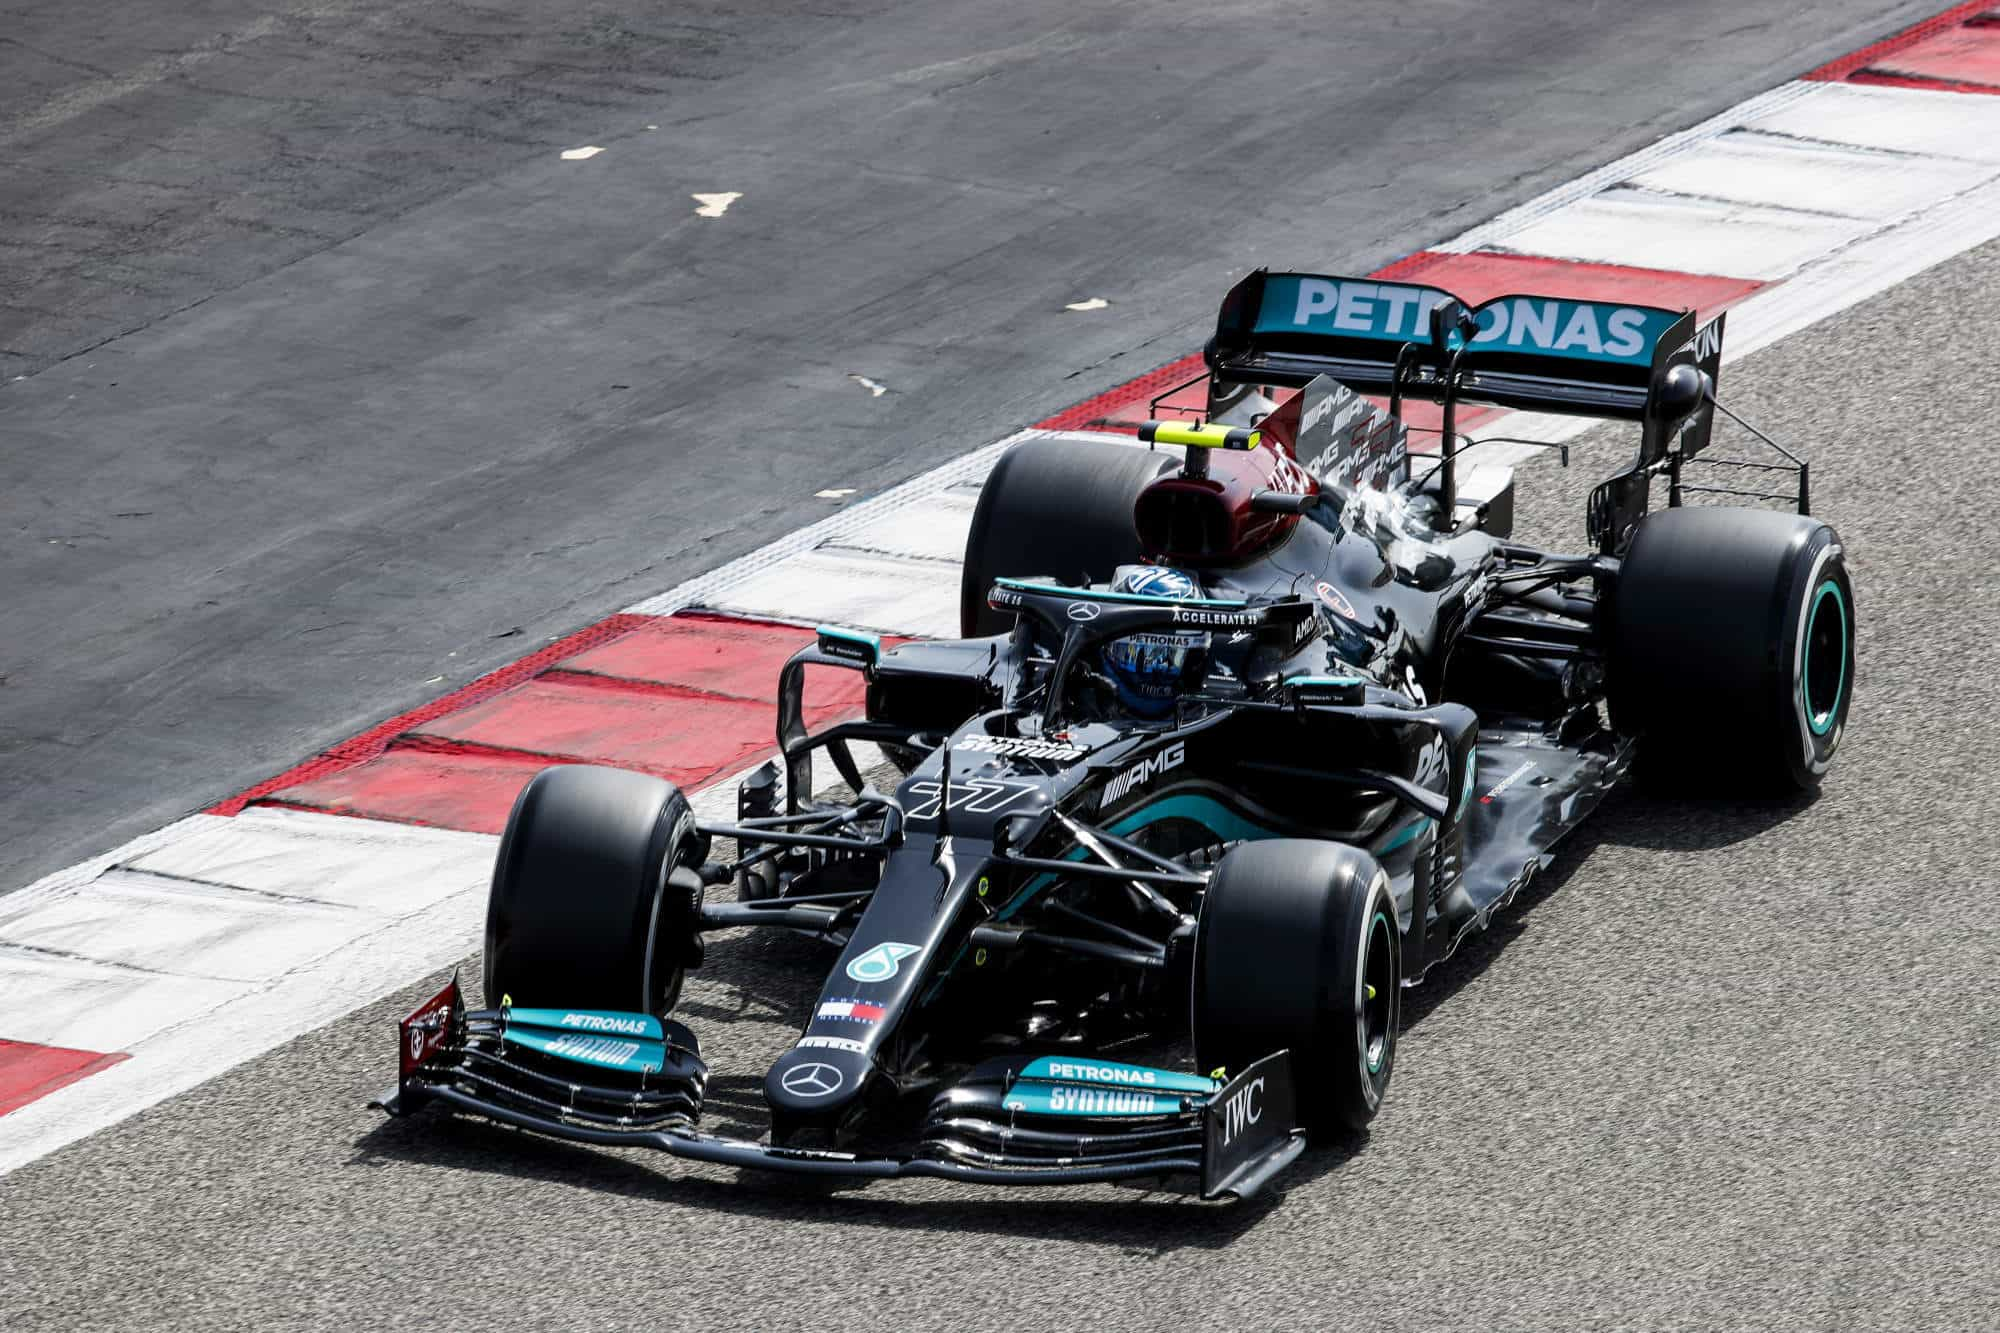 2021 Bahrain F1 test day 1 Bottas Mercedes C2 Pirelli Photo Pirelli